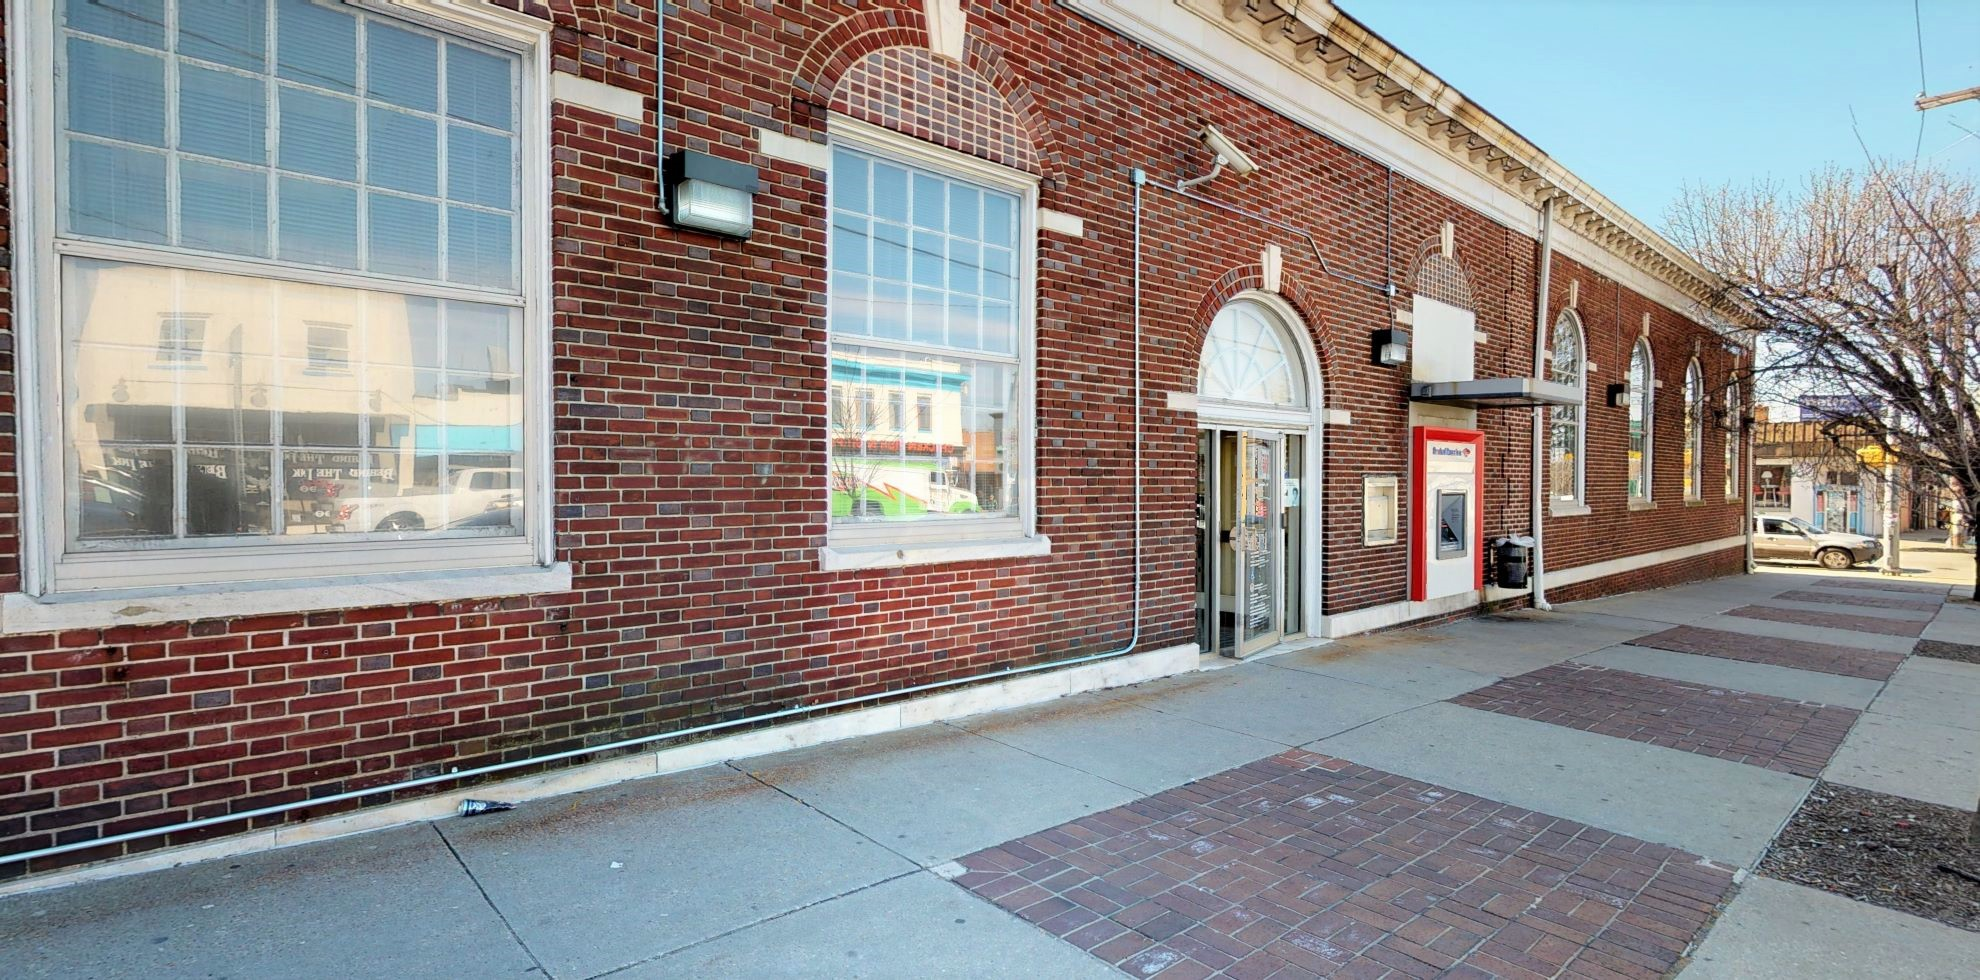 Bank of America financial center with walk-up ATM | 3601 S Hanover St, Baltimore, MD 21225